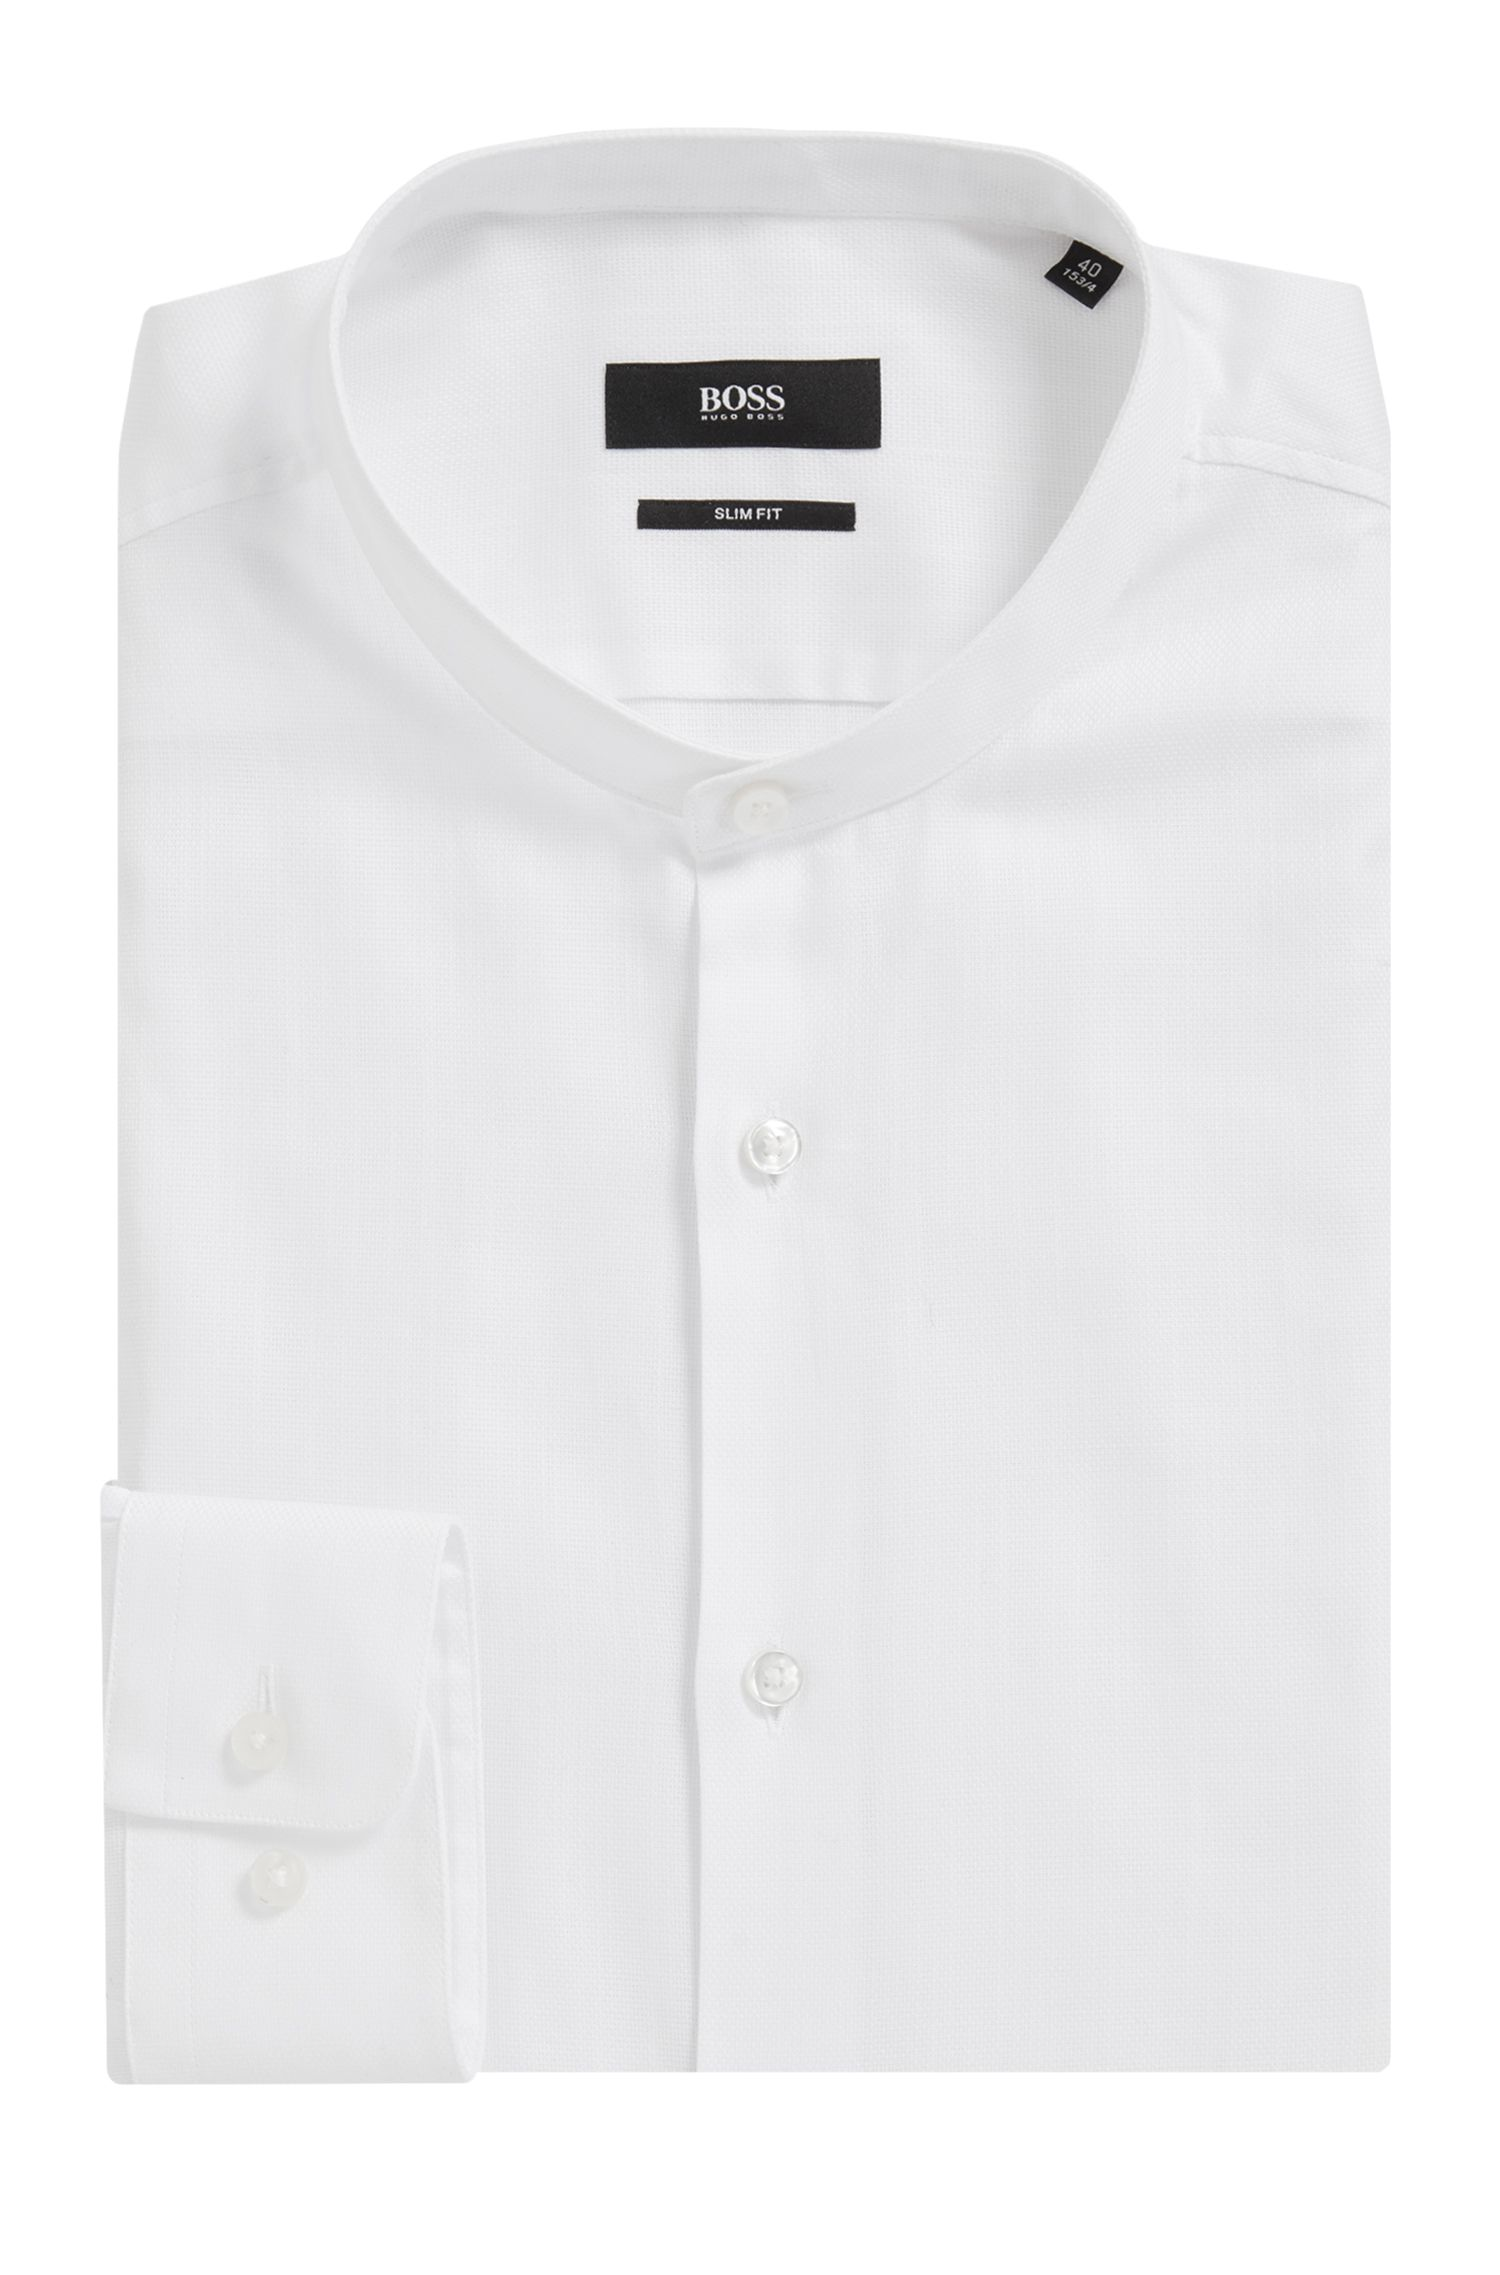 Cotton Dress Shirt, Slim Fit | Jordi, White